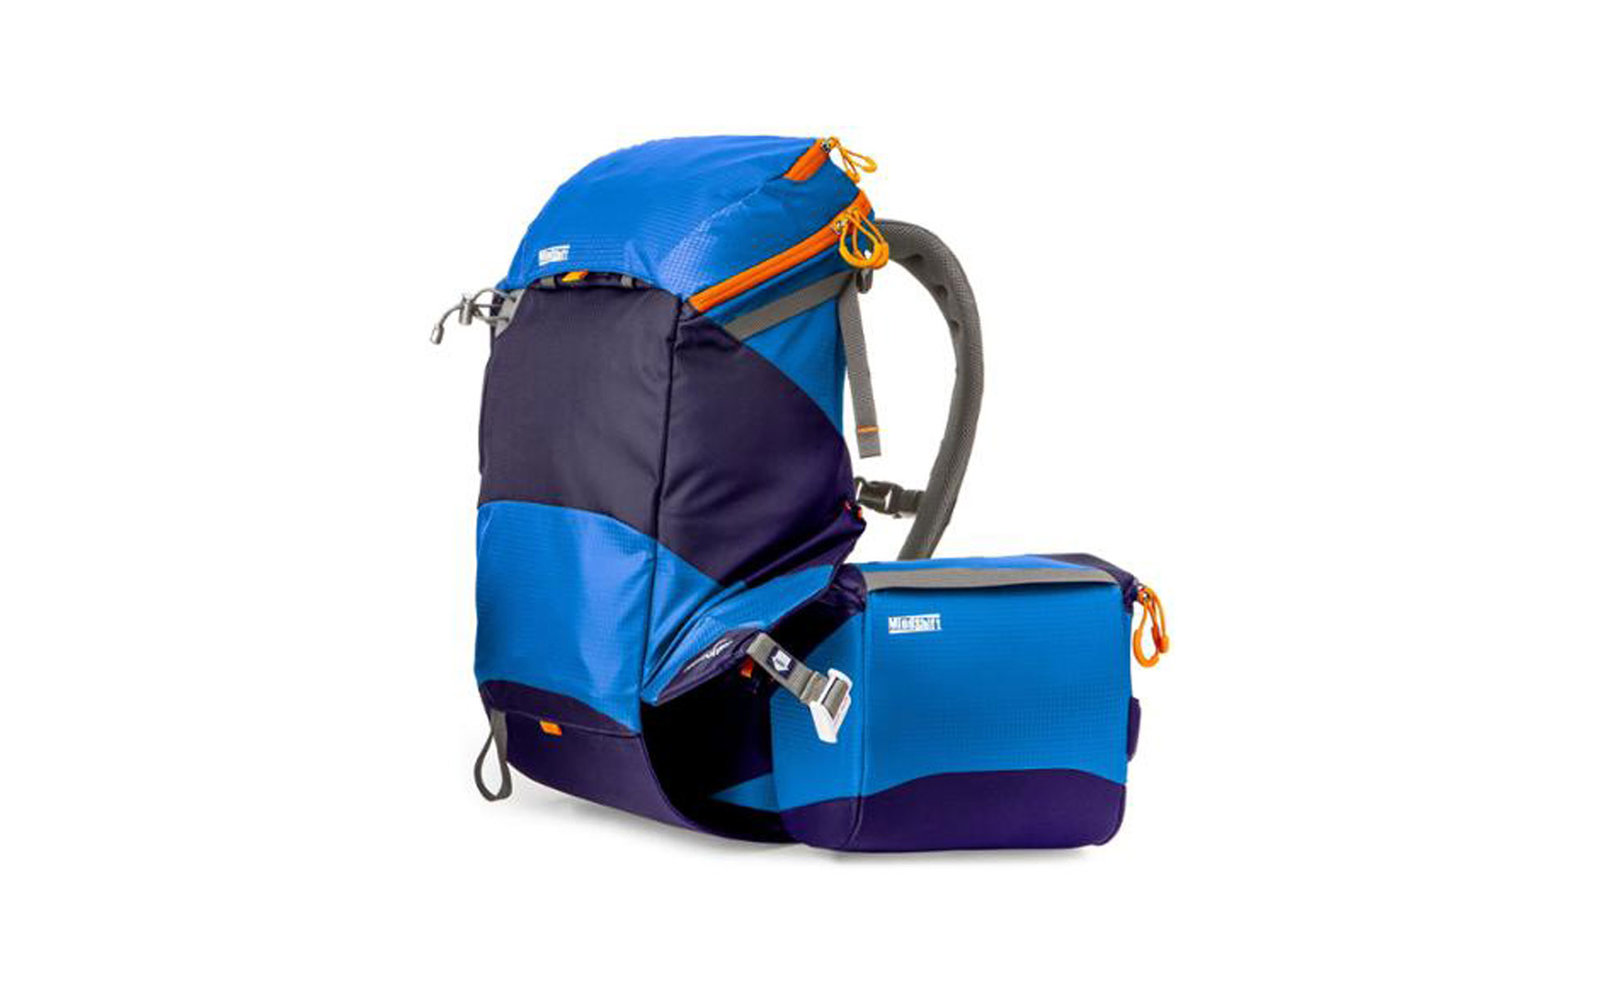 REI Midshift Gear Rotation Camera pack